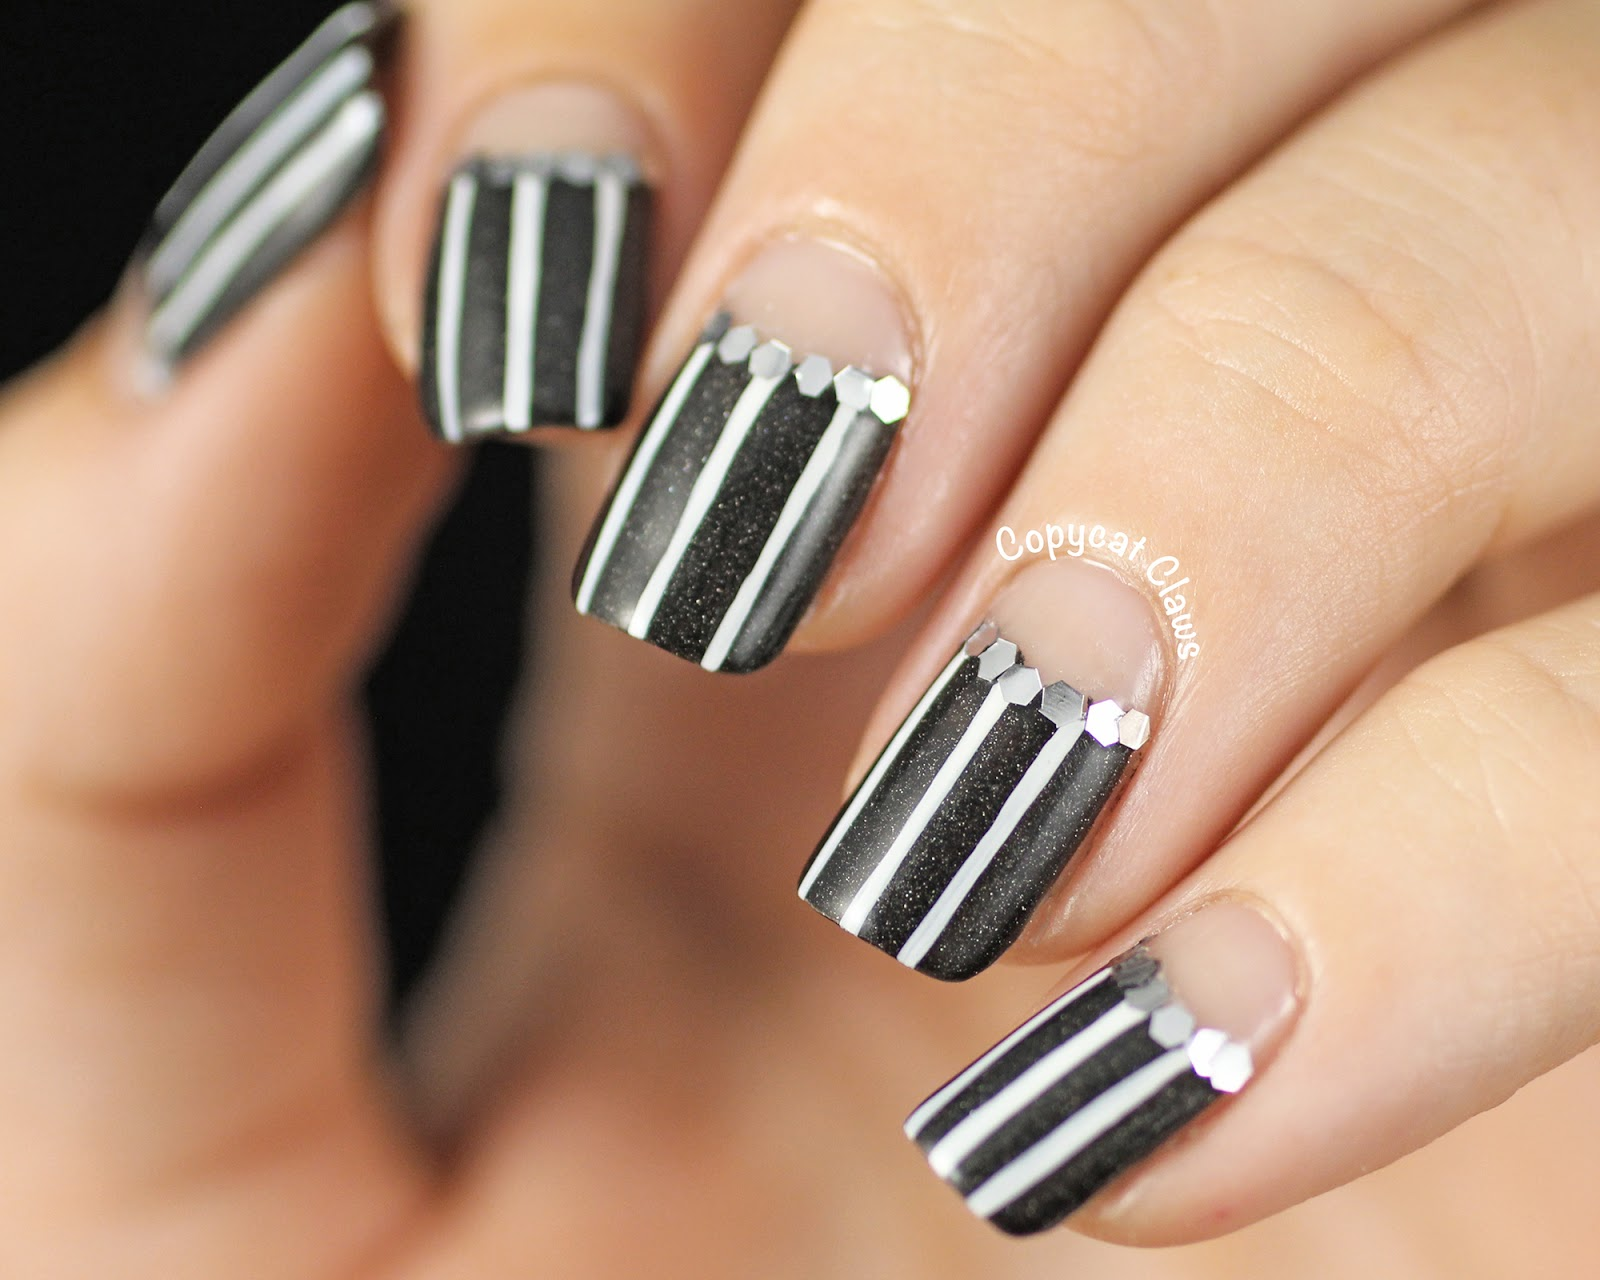 Copycat Claws 31dc2014 Day 18 Pinstripe Half Moonsd Another